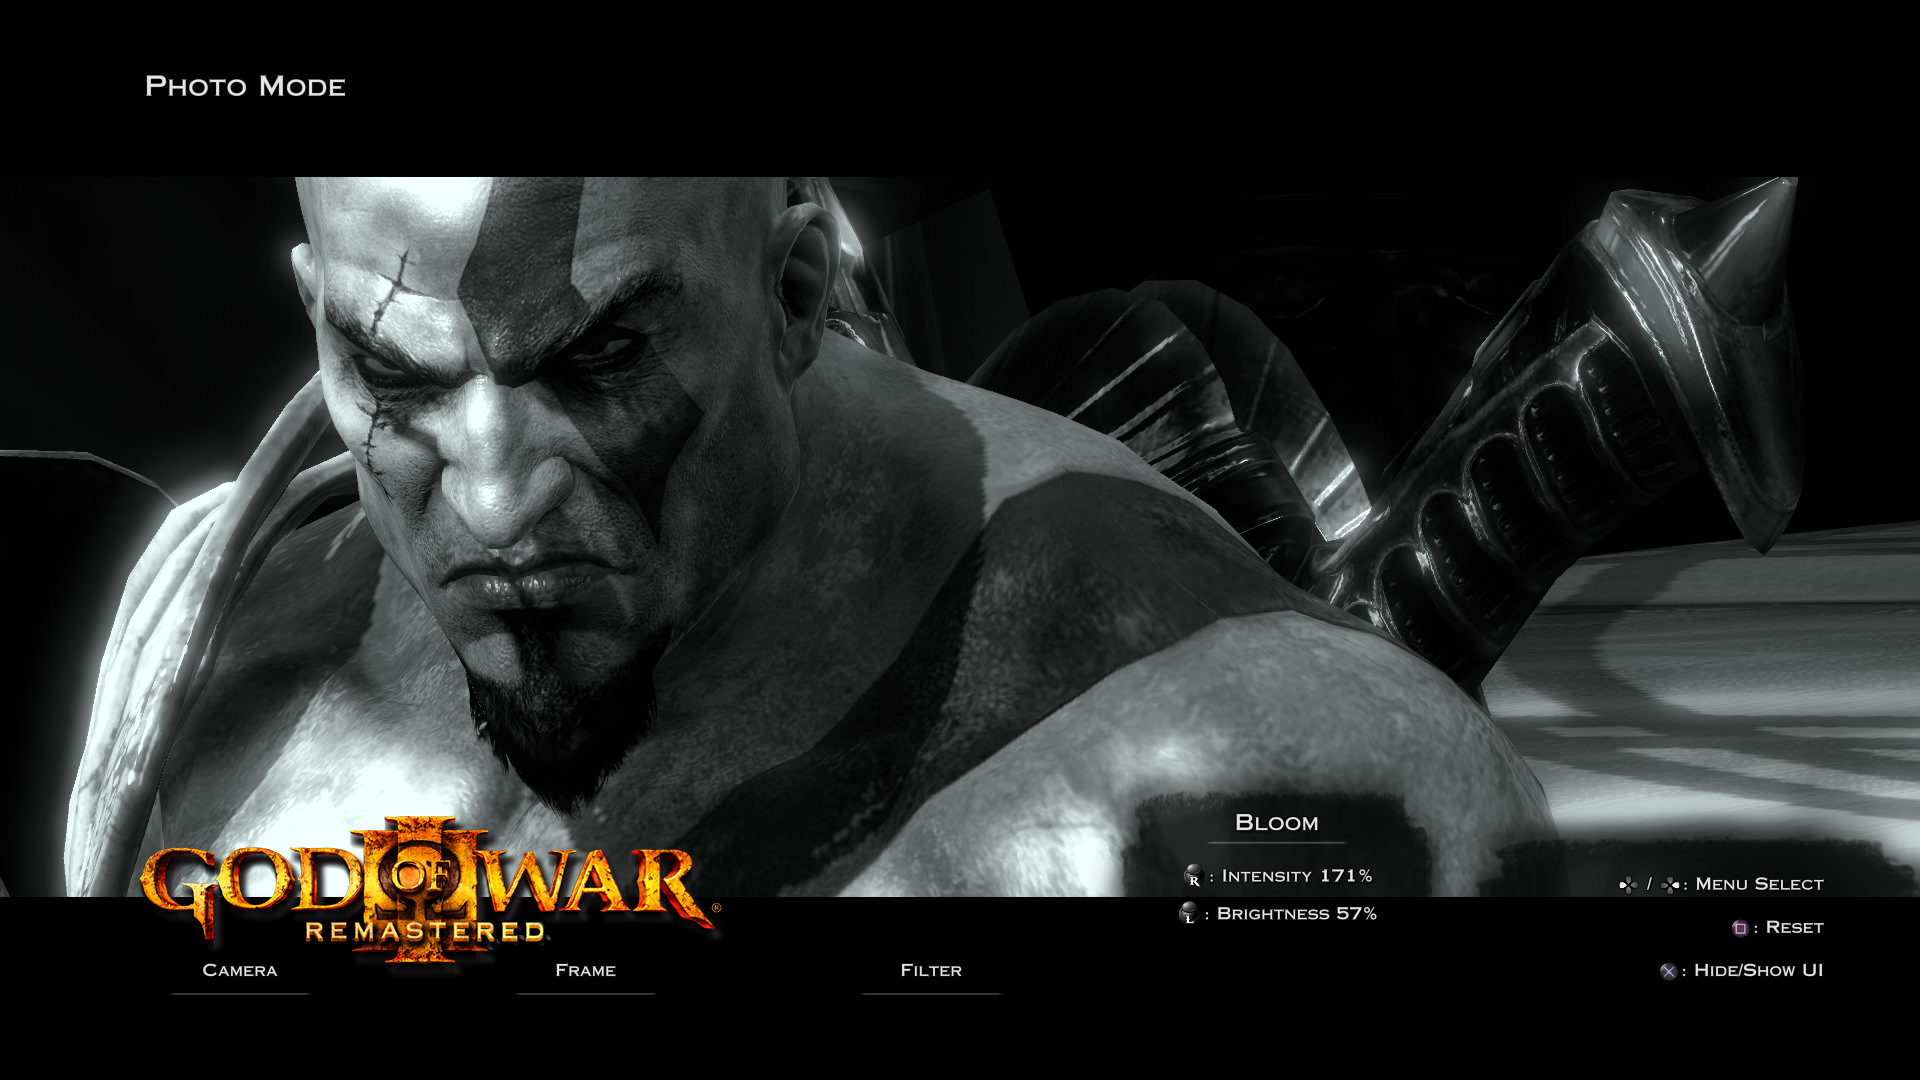 god-of-war-iii-remastered-screen-09-ps4-